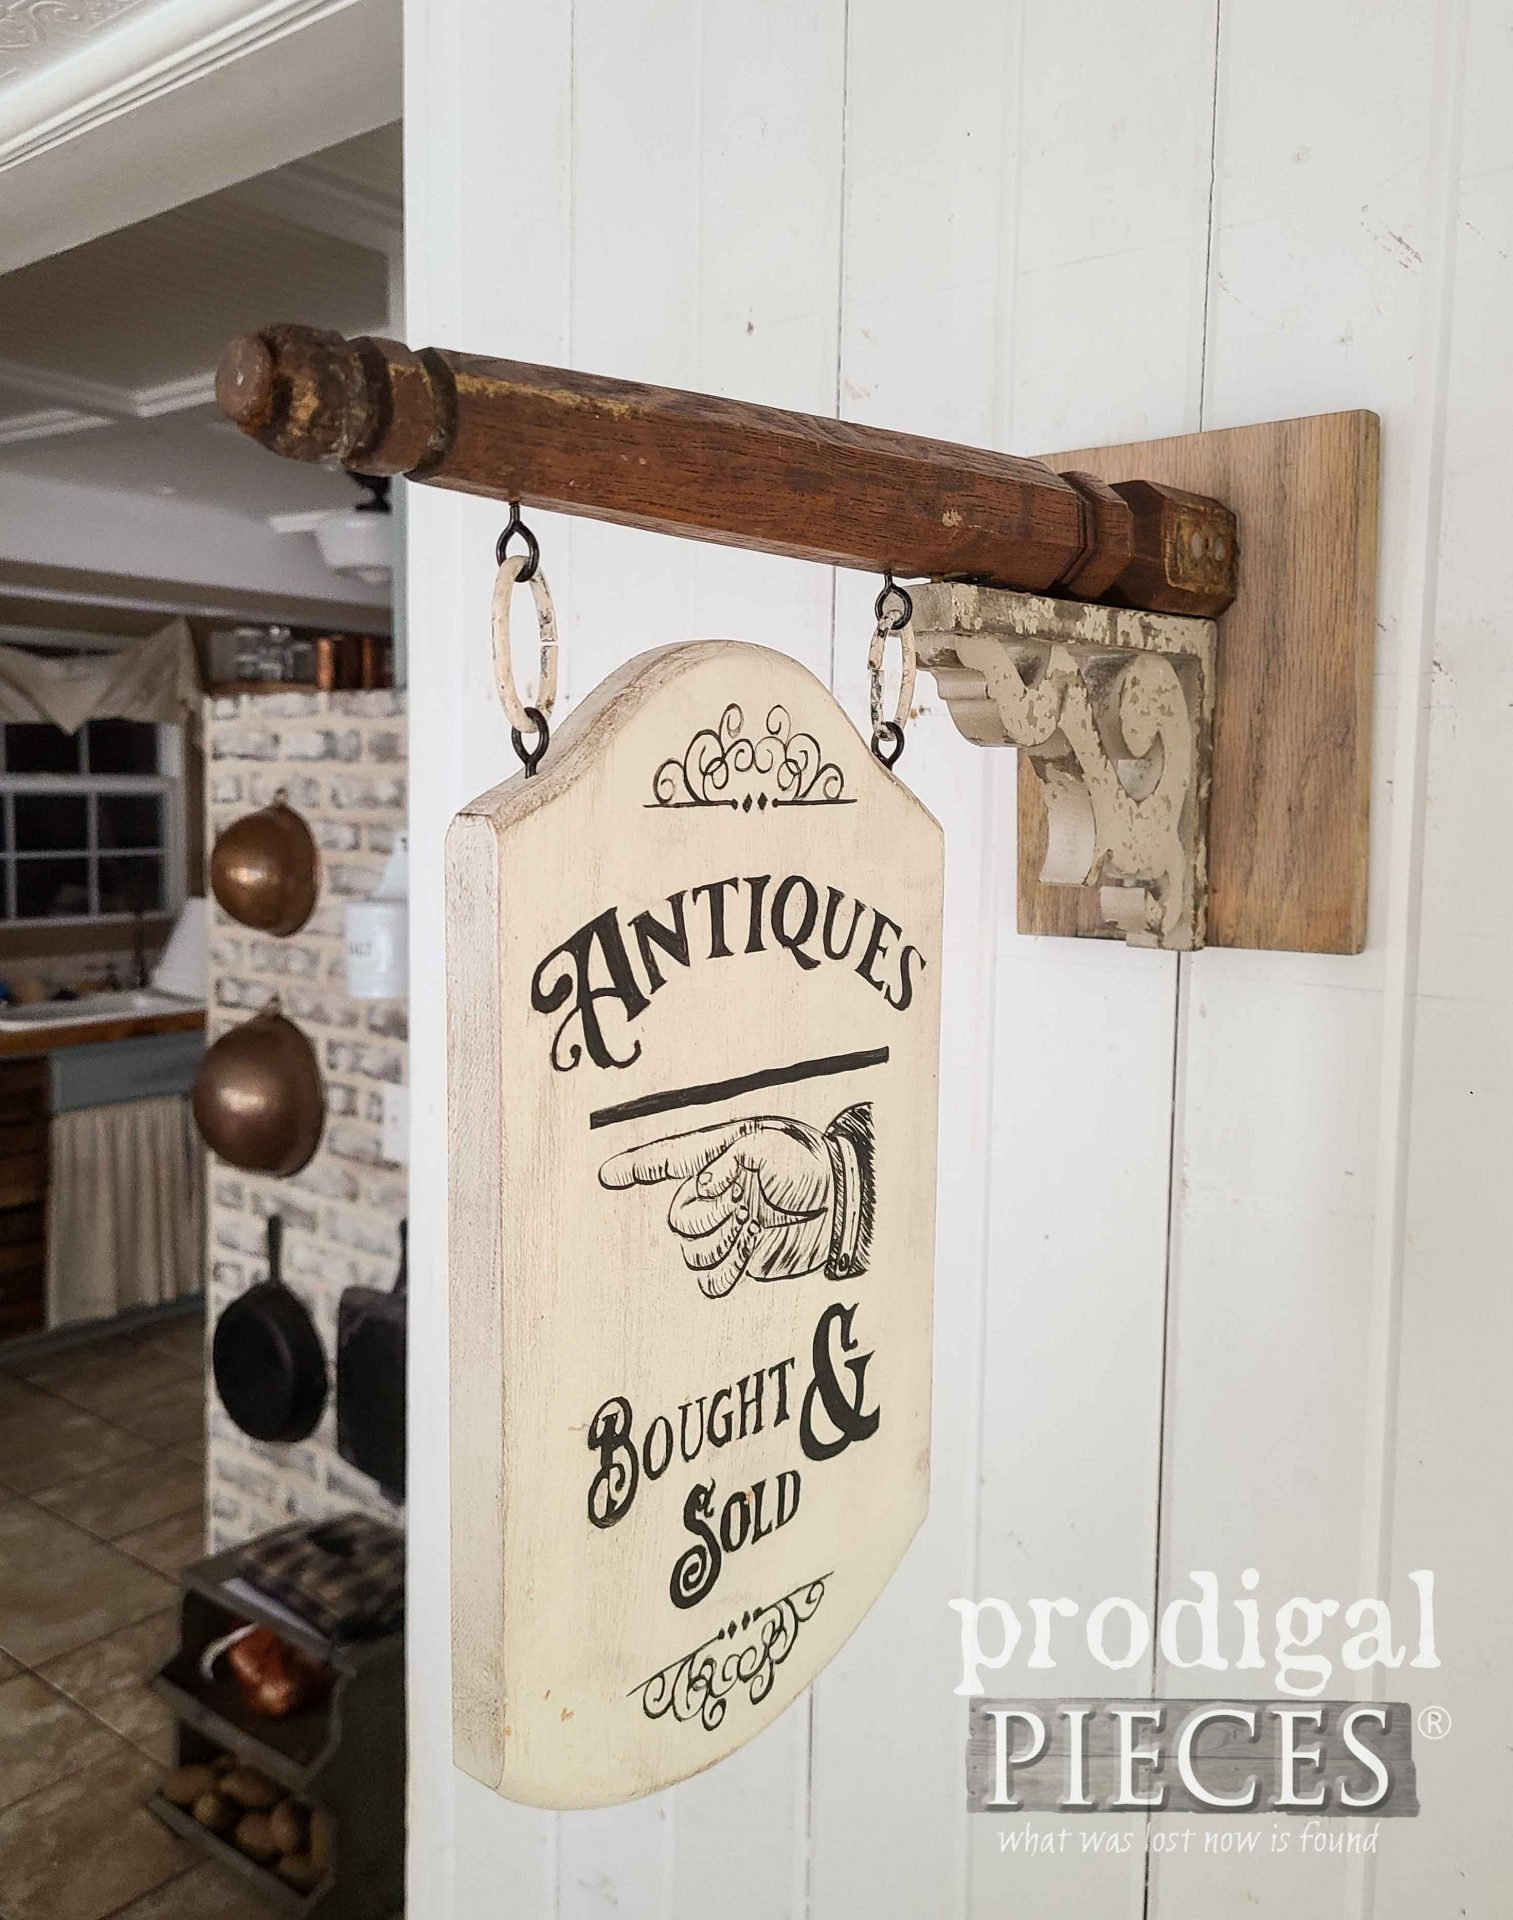 Farmhouse Antique Sign made from Upcycled Chair Legs by Larissa of Prodigal Pieces | prodigalpieces.com #prodigalpieces #farmhouse #home #handmade #upcycled